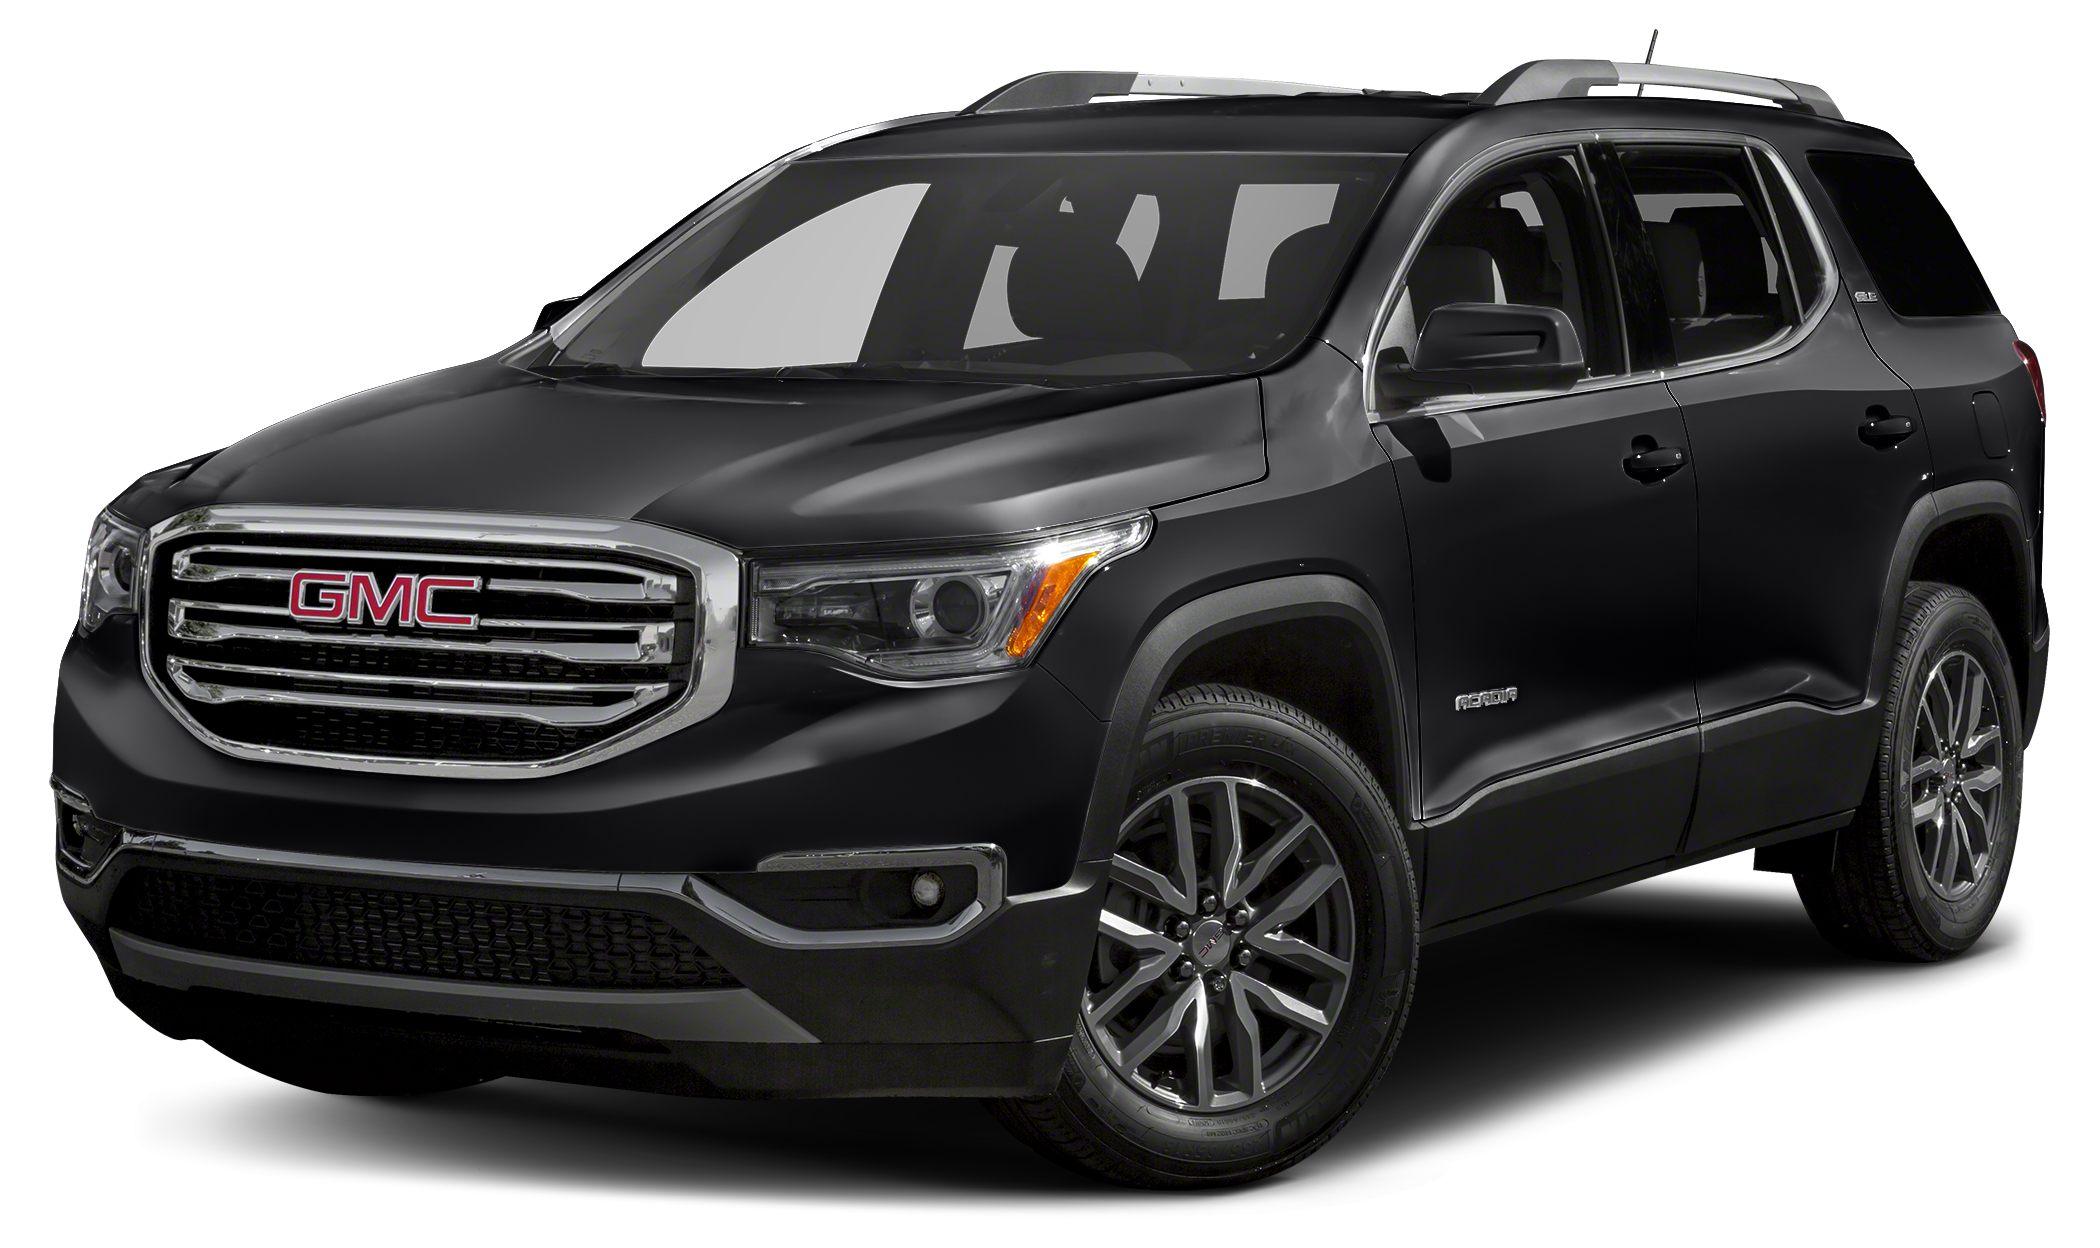 2018 GMC Acadia SLT-1 This 2018 GMC Acadia 4dr FWD 4dr SLT with SLT-1 features a 25L 4 CYLINDER 4